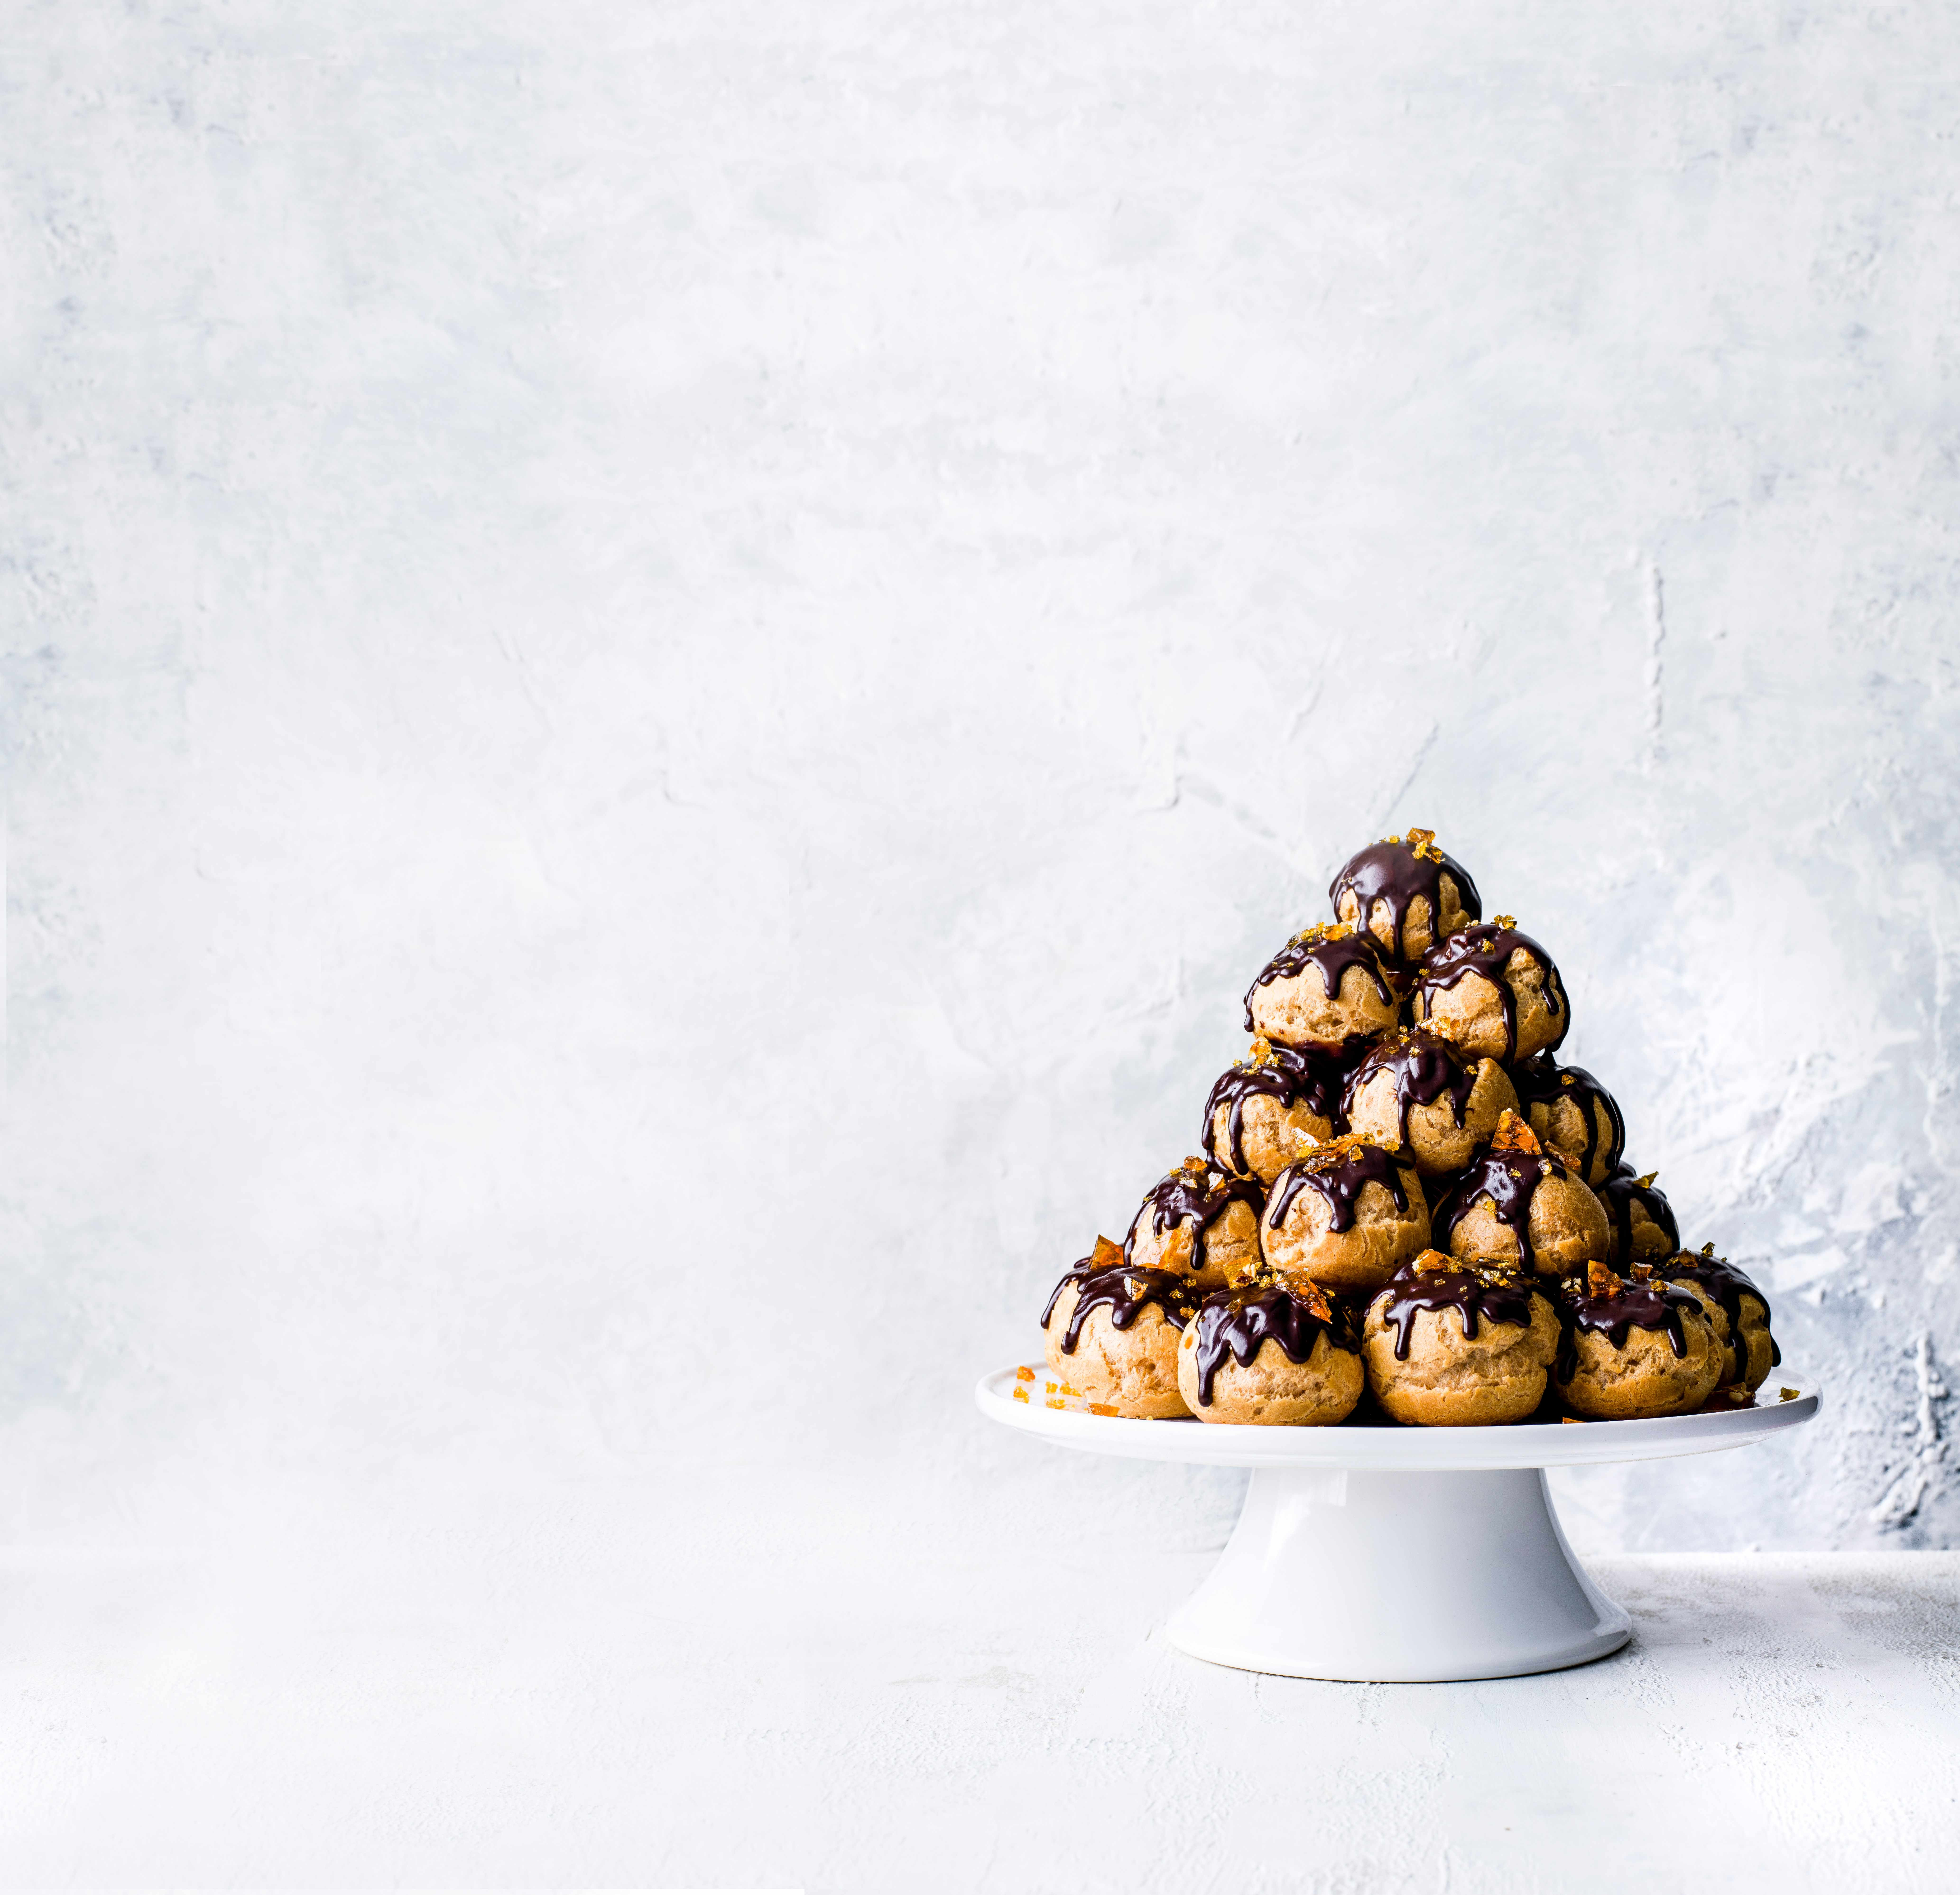 Profiterole Tower with Chocolate and Hazelnuts